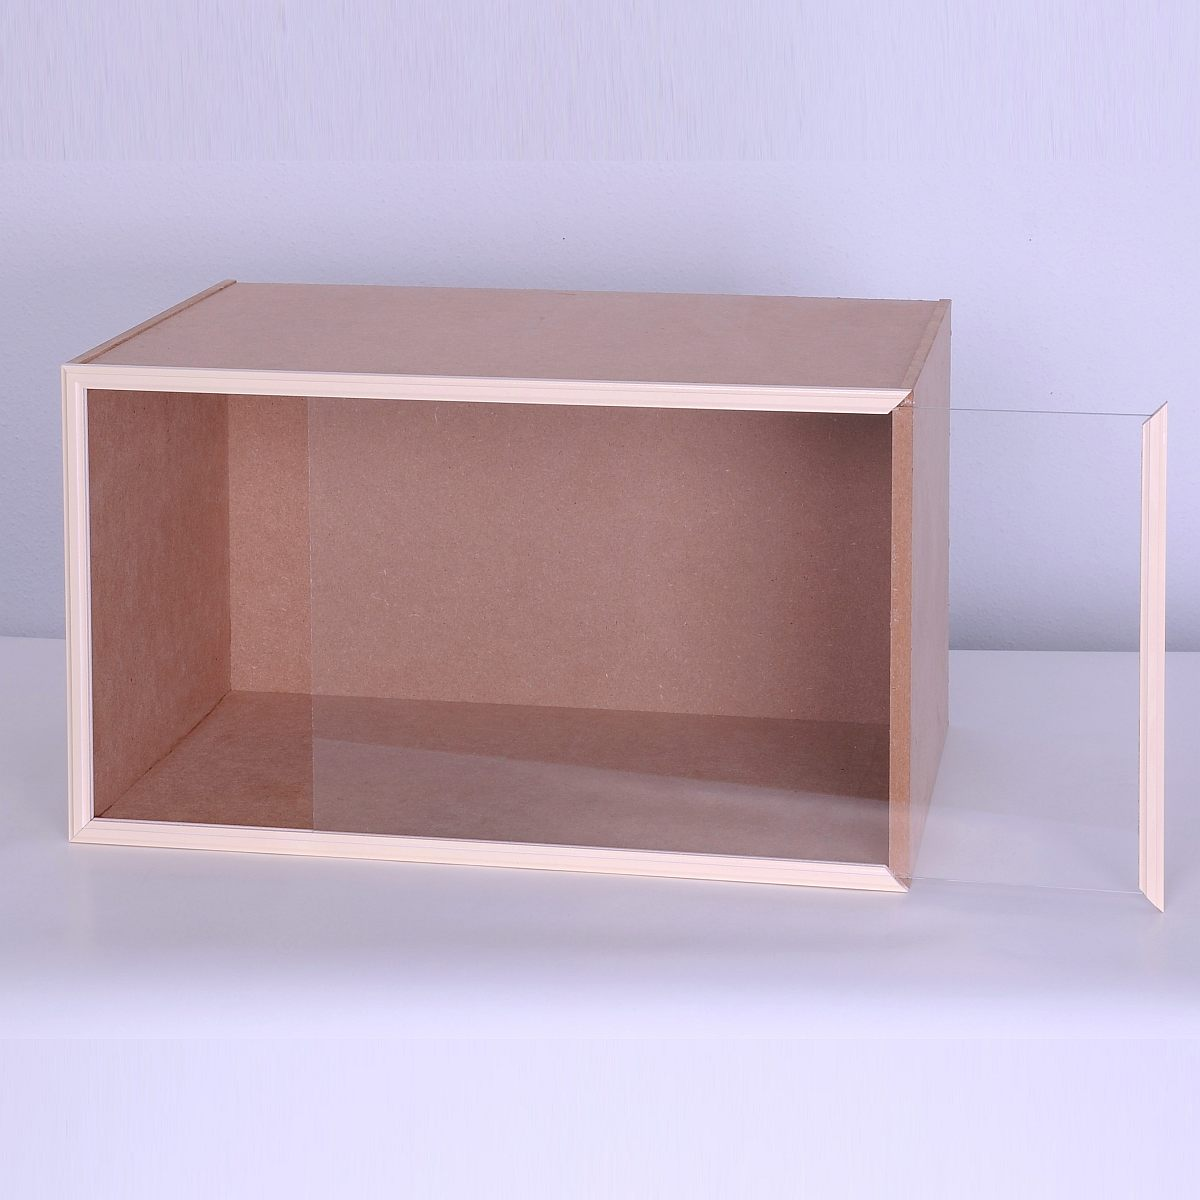 Module Box with front glass panel